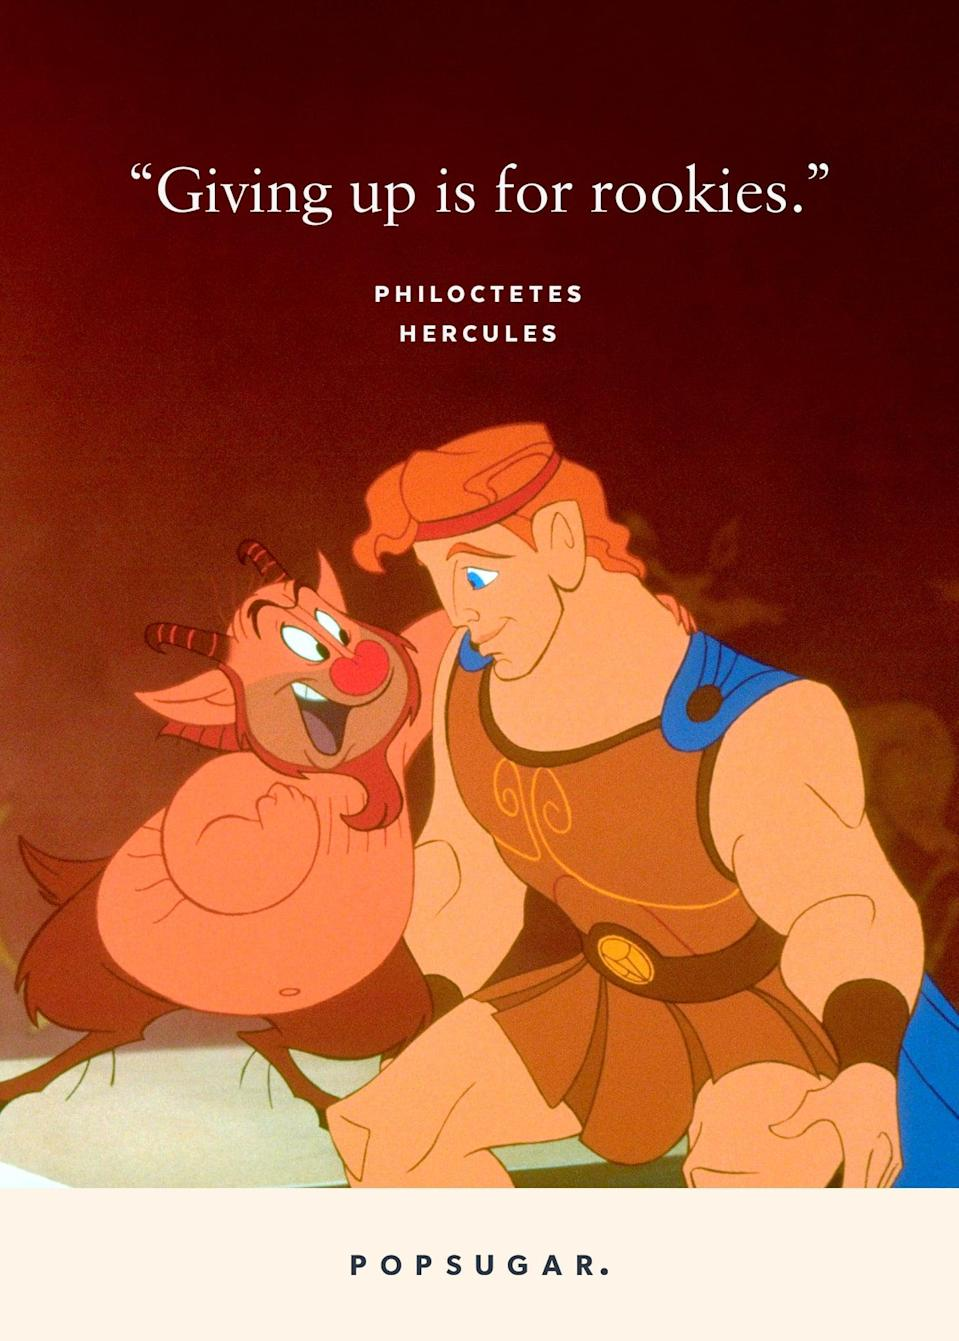 "<p>""Giving up is for rookies."" - Philoctetes, <b>Hercules</b></p>"